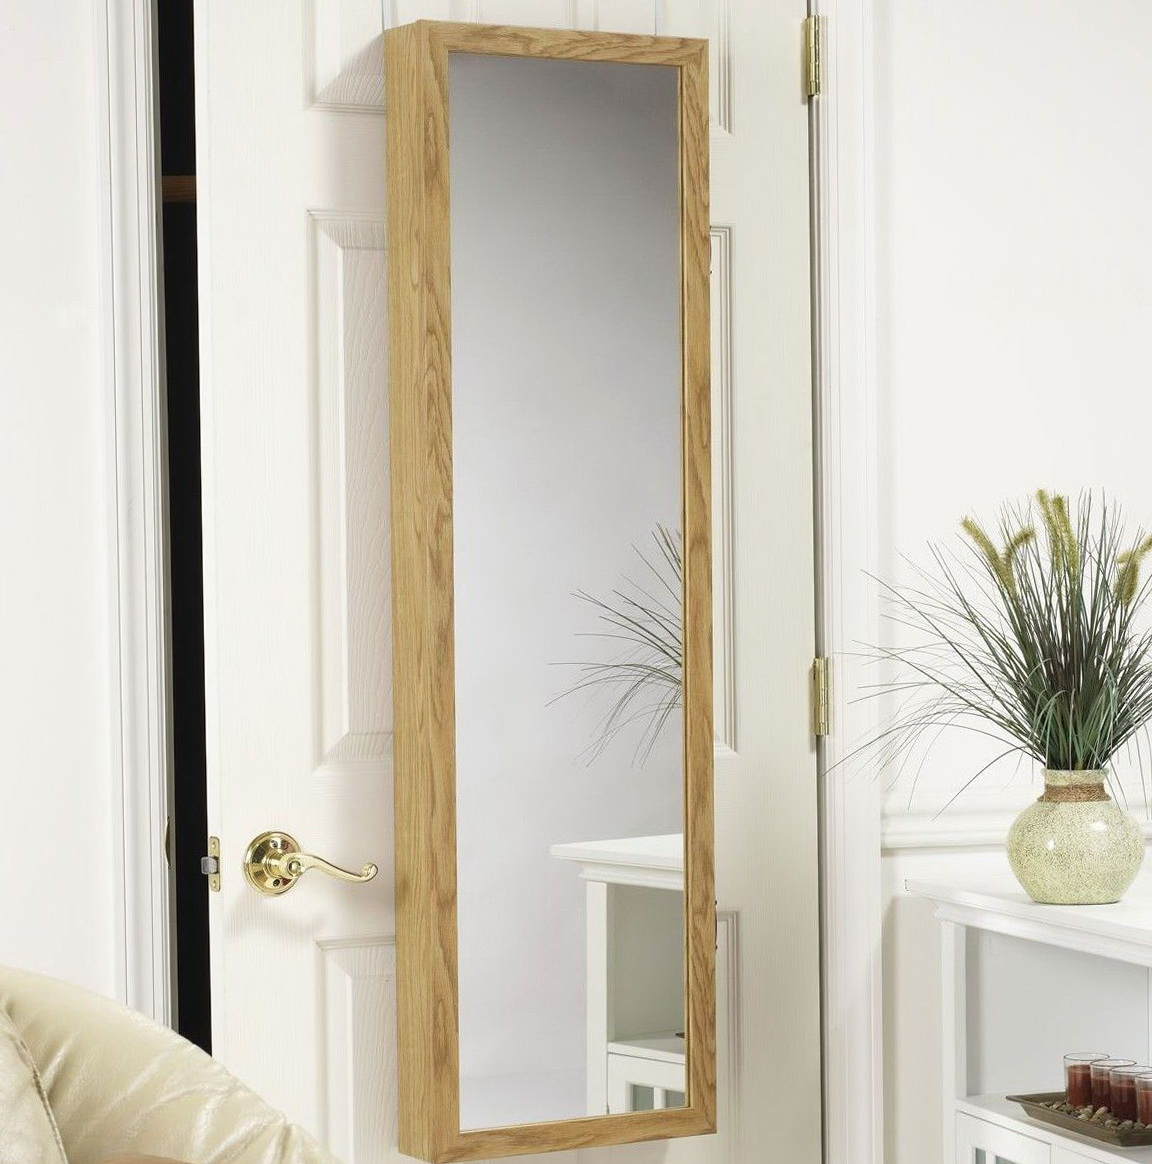 Jewelry Storage Mirror Over The Door